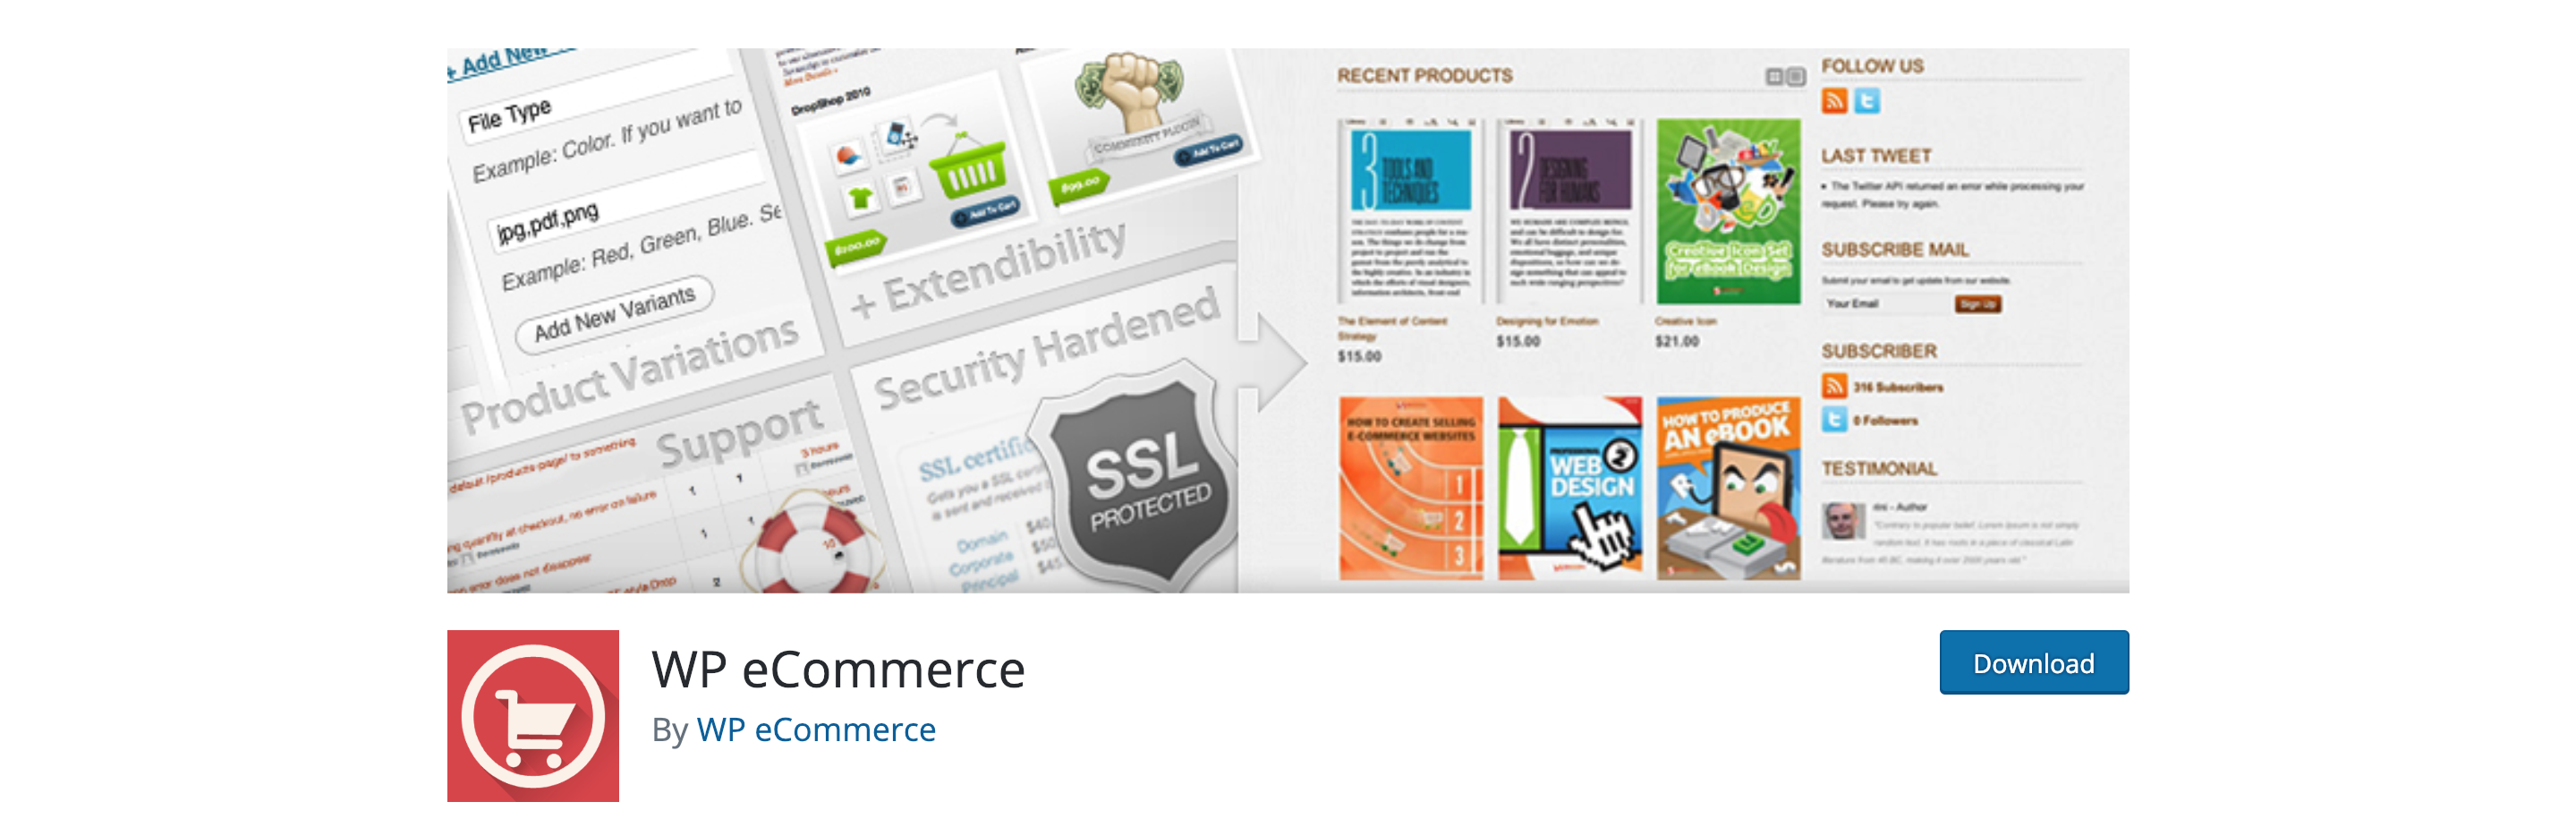 wpecommerce_plugin